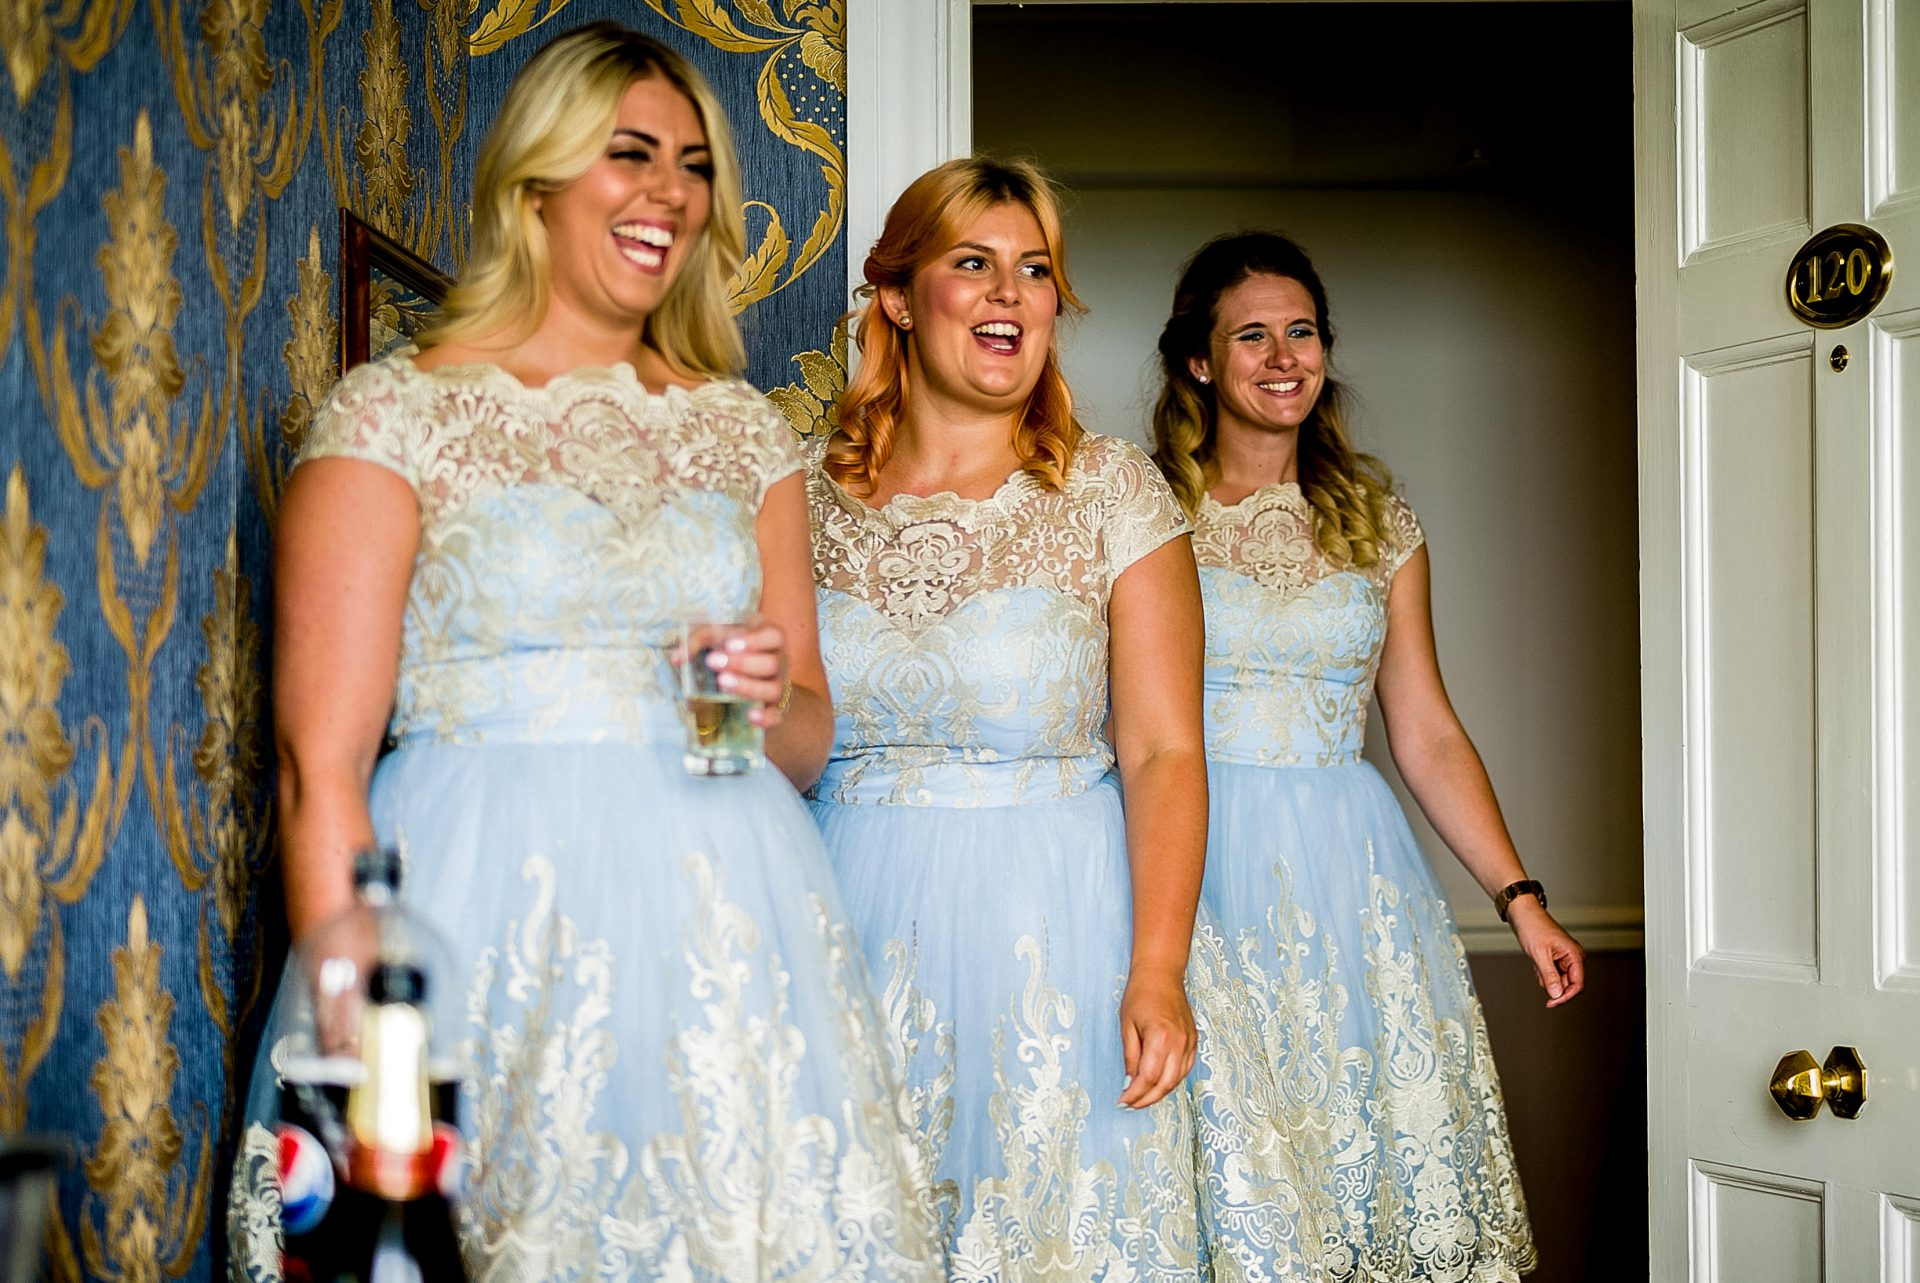 YFFUK Phil Endicott Pinto Tregenna Castle St Ives bridesmaids reacting to the brides dress